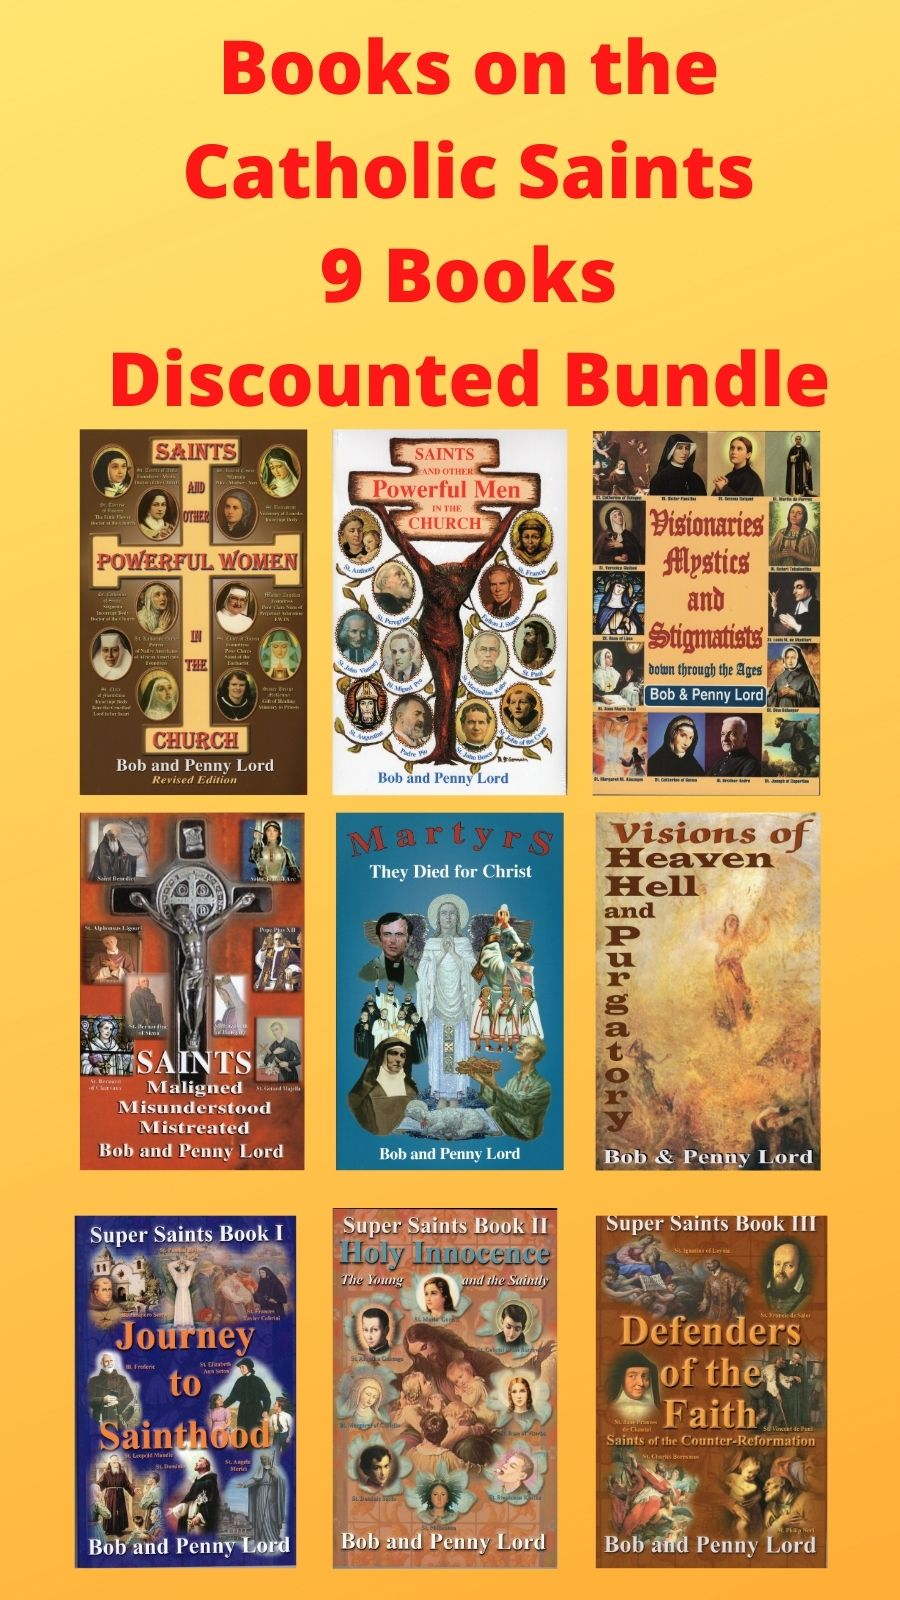 Books on the Sai nts 9 Books Discounted Bundle